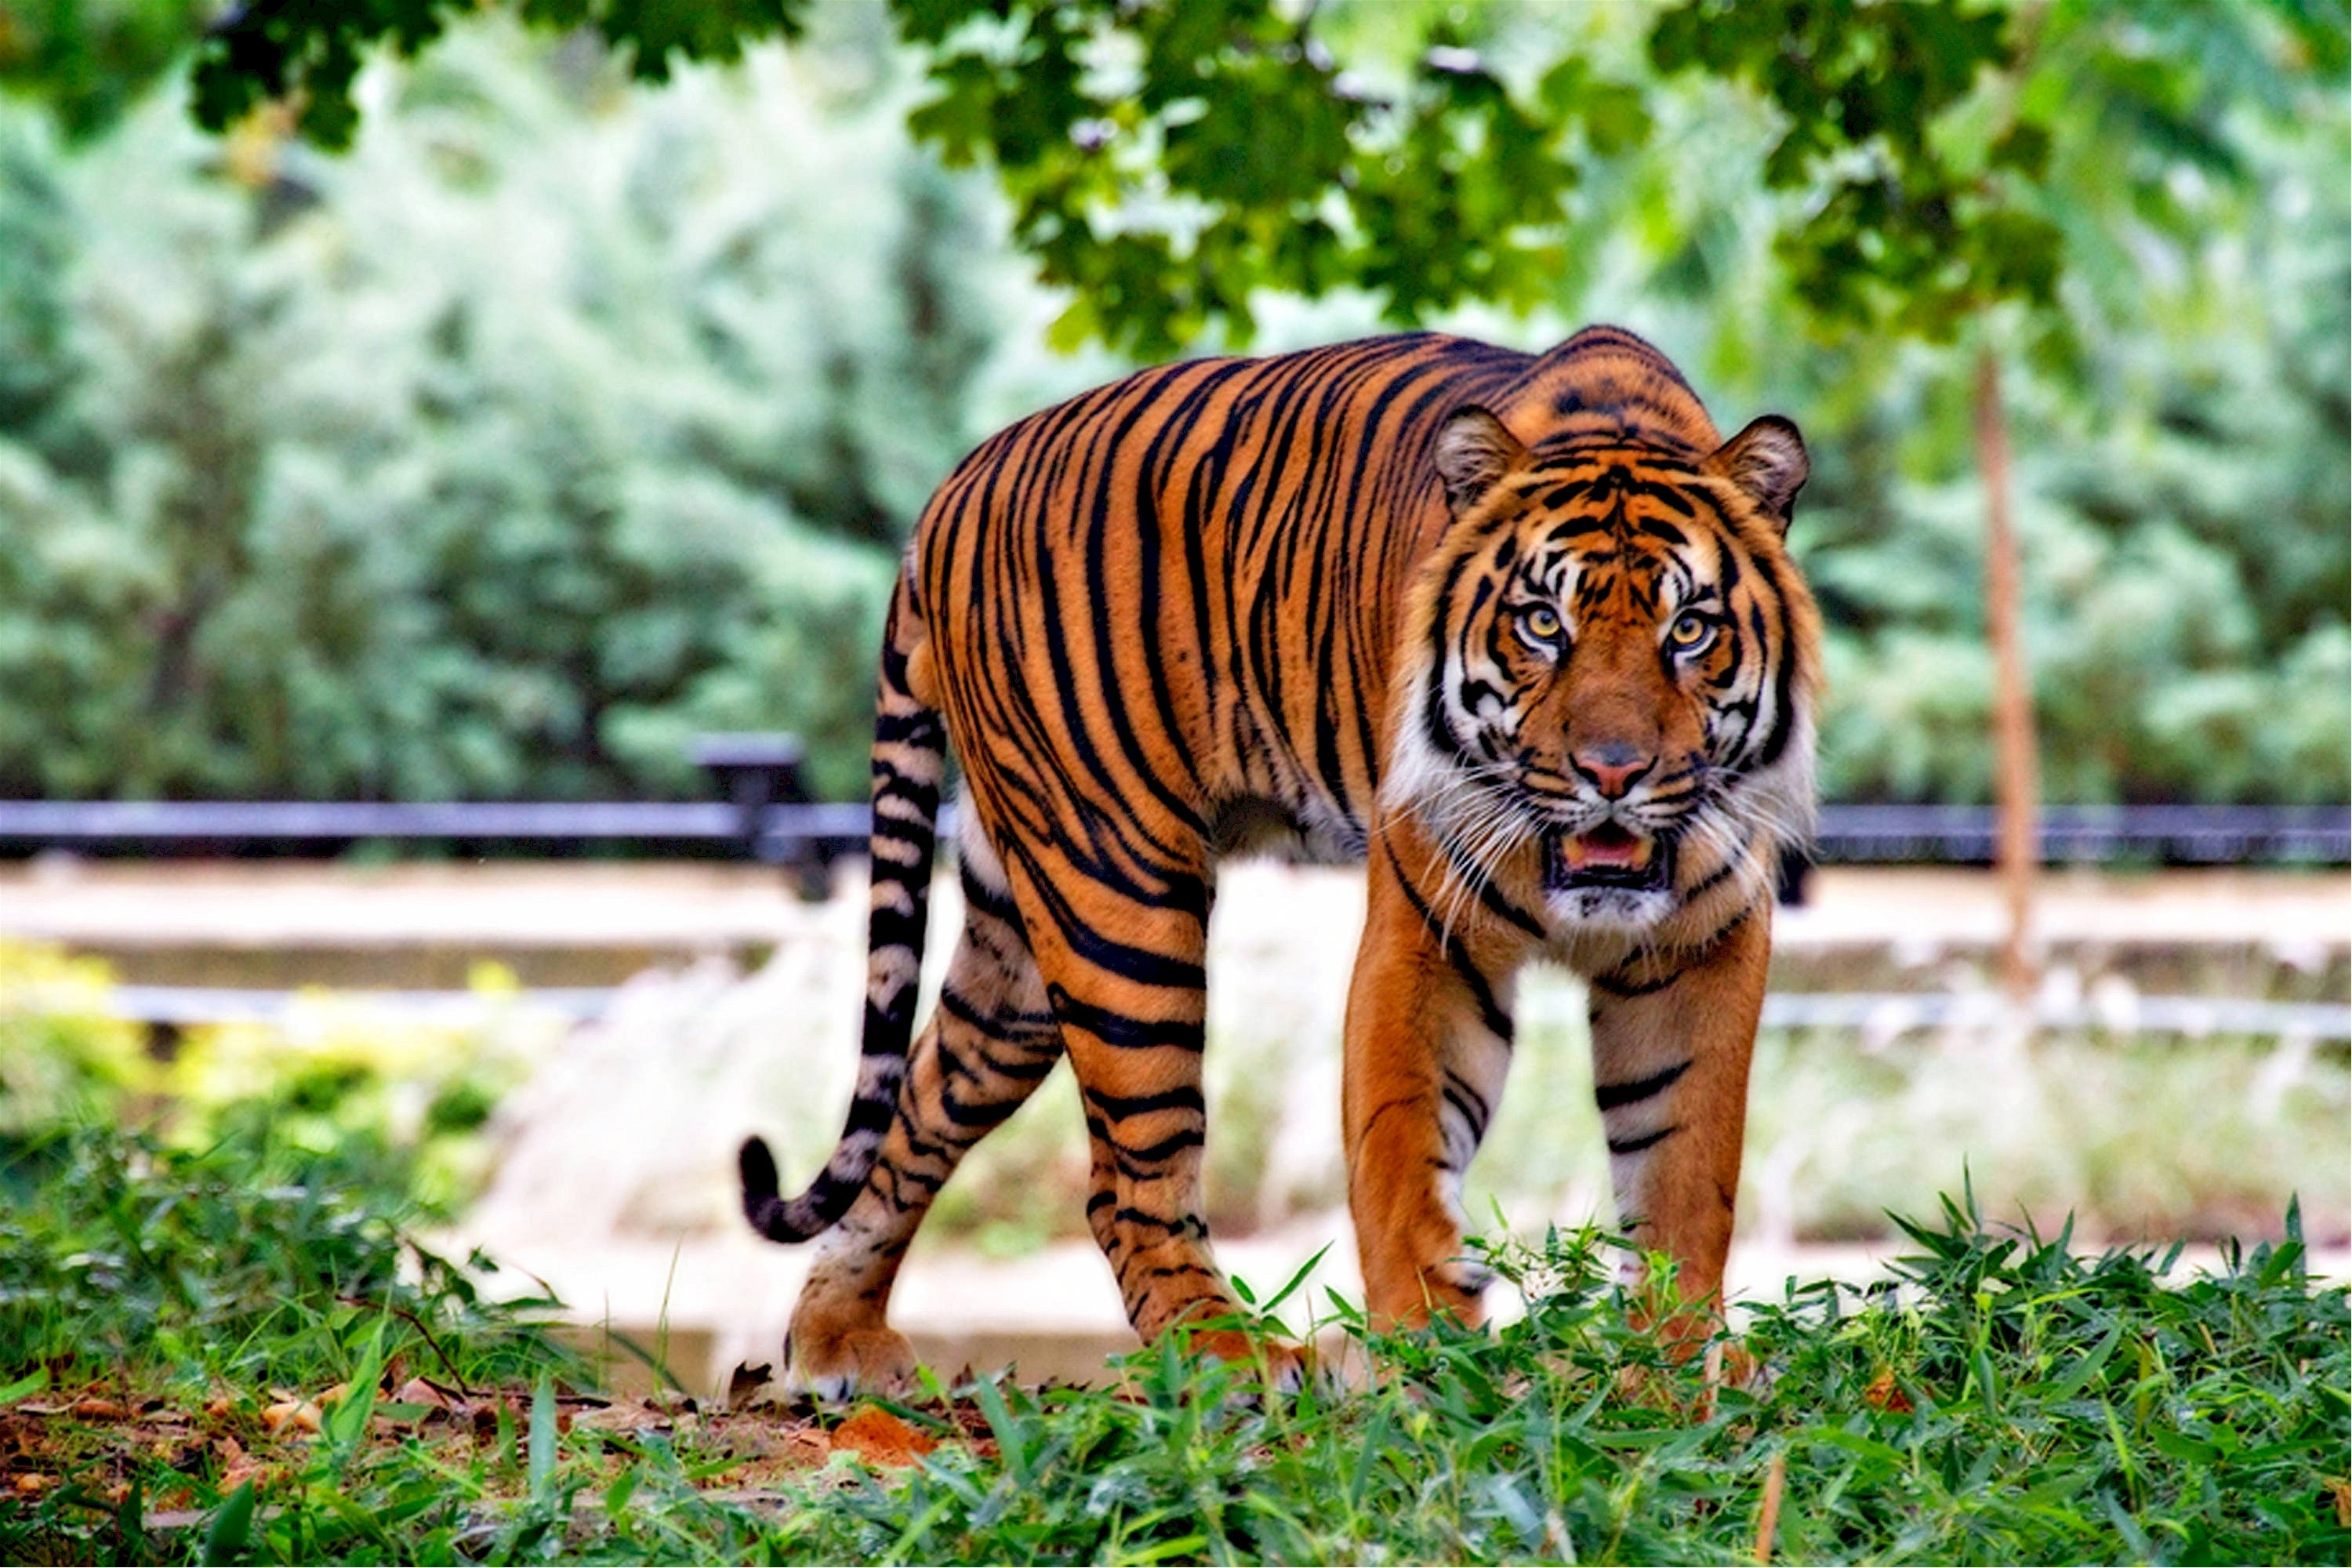 image regarding Printable Tiger Pictures known as 100+ Majestic Tiger Photos · Pexels · Totally free Inventory Illustrations or photos